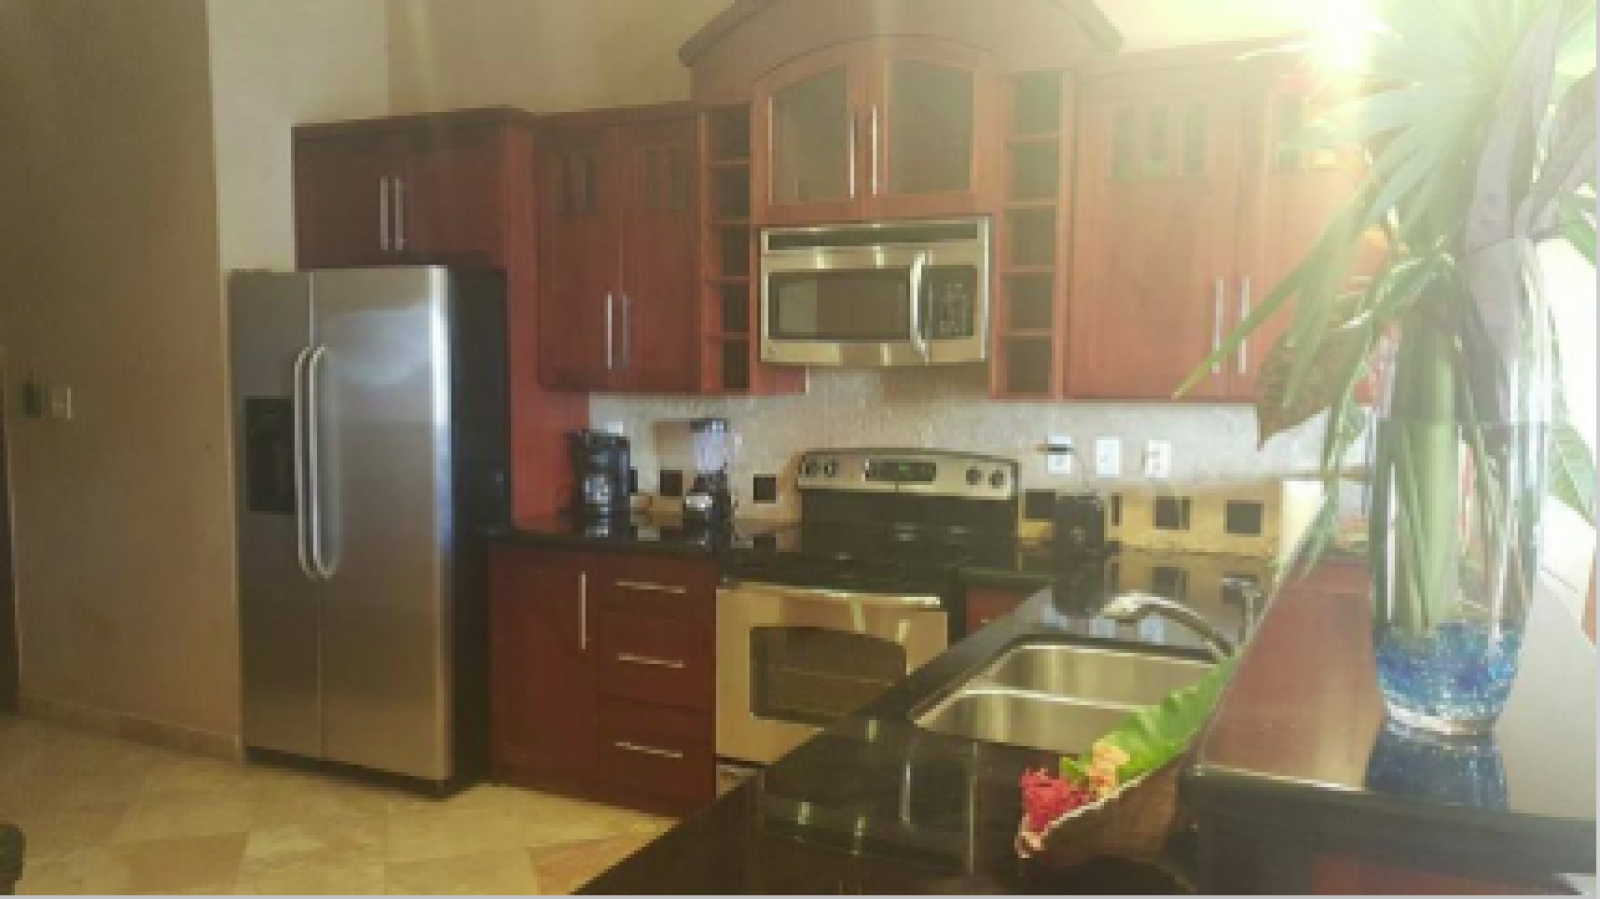 Granite countertops, high end appliances and fully equipped kitchen.